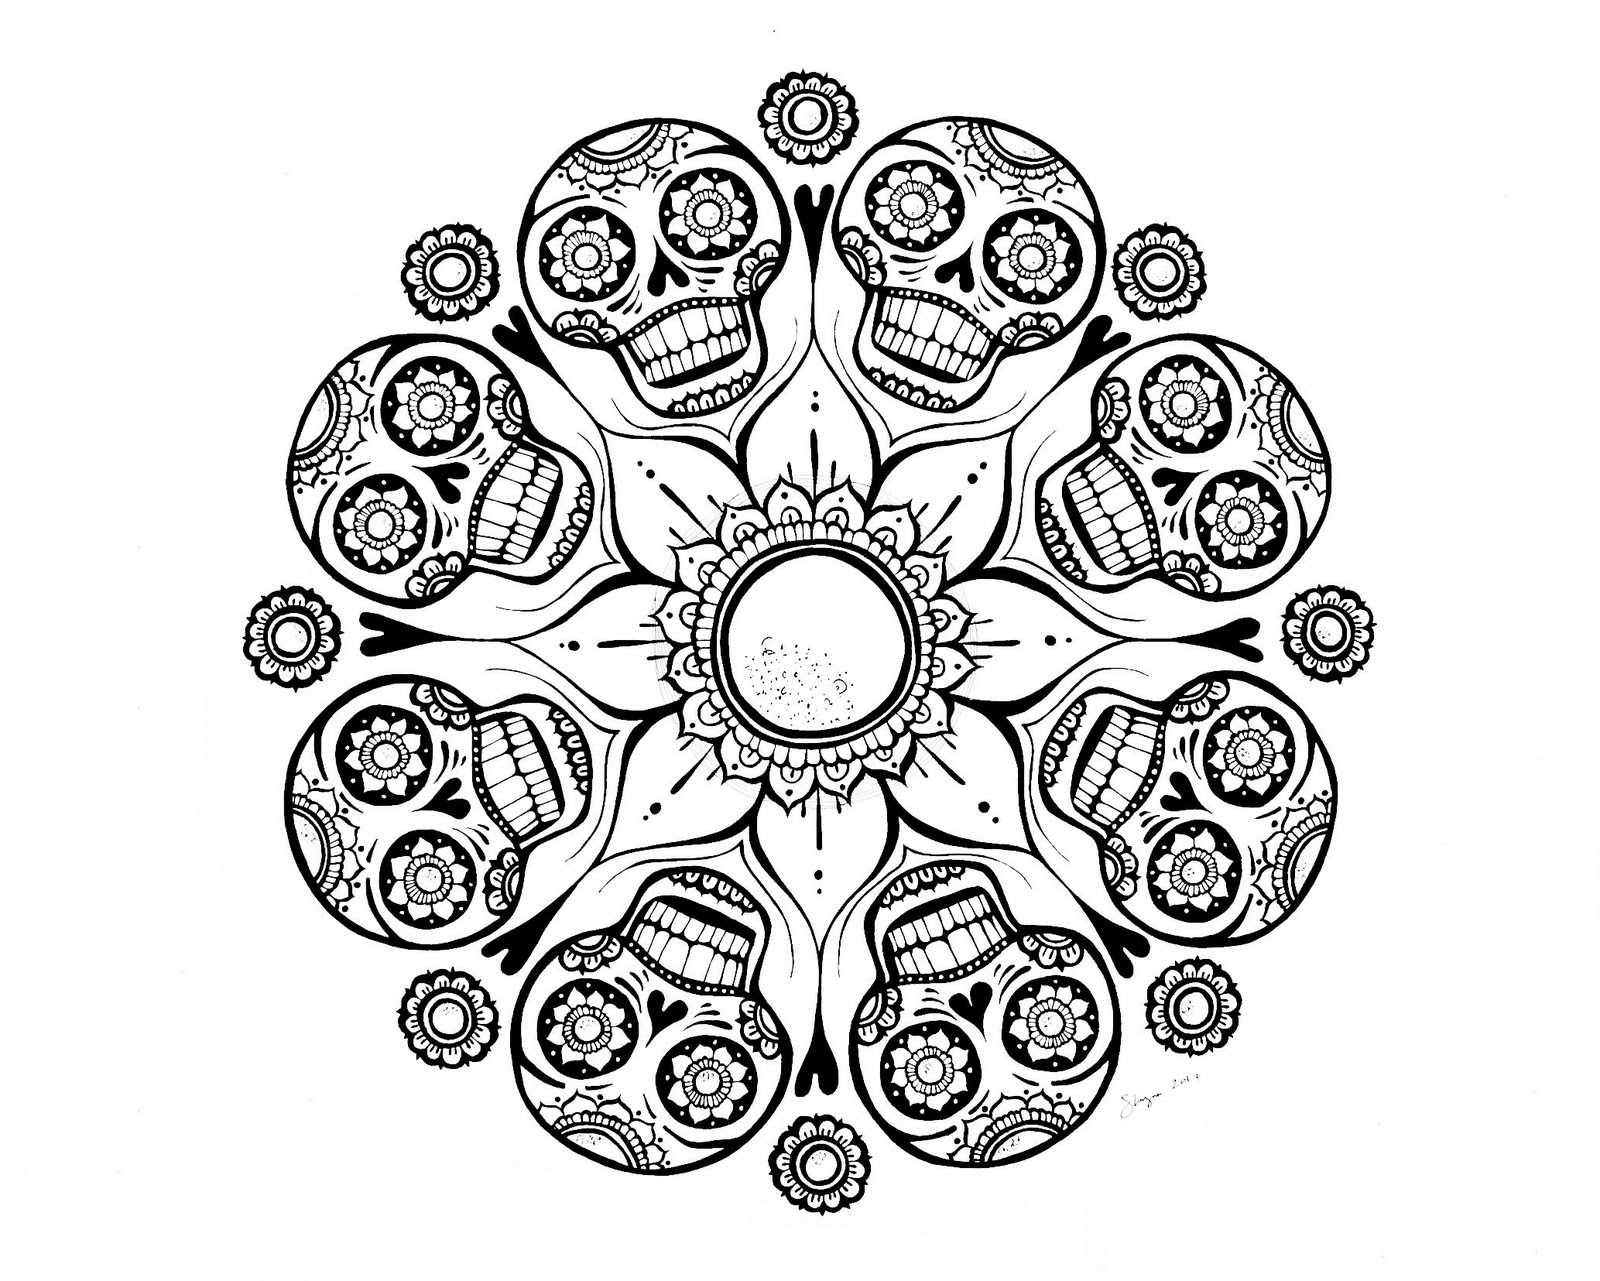 Free Mandala Coloring Pages Free Mandala Coloring Pages Pdf At Getdrawings Free For